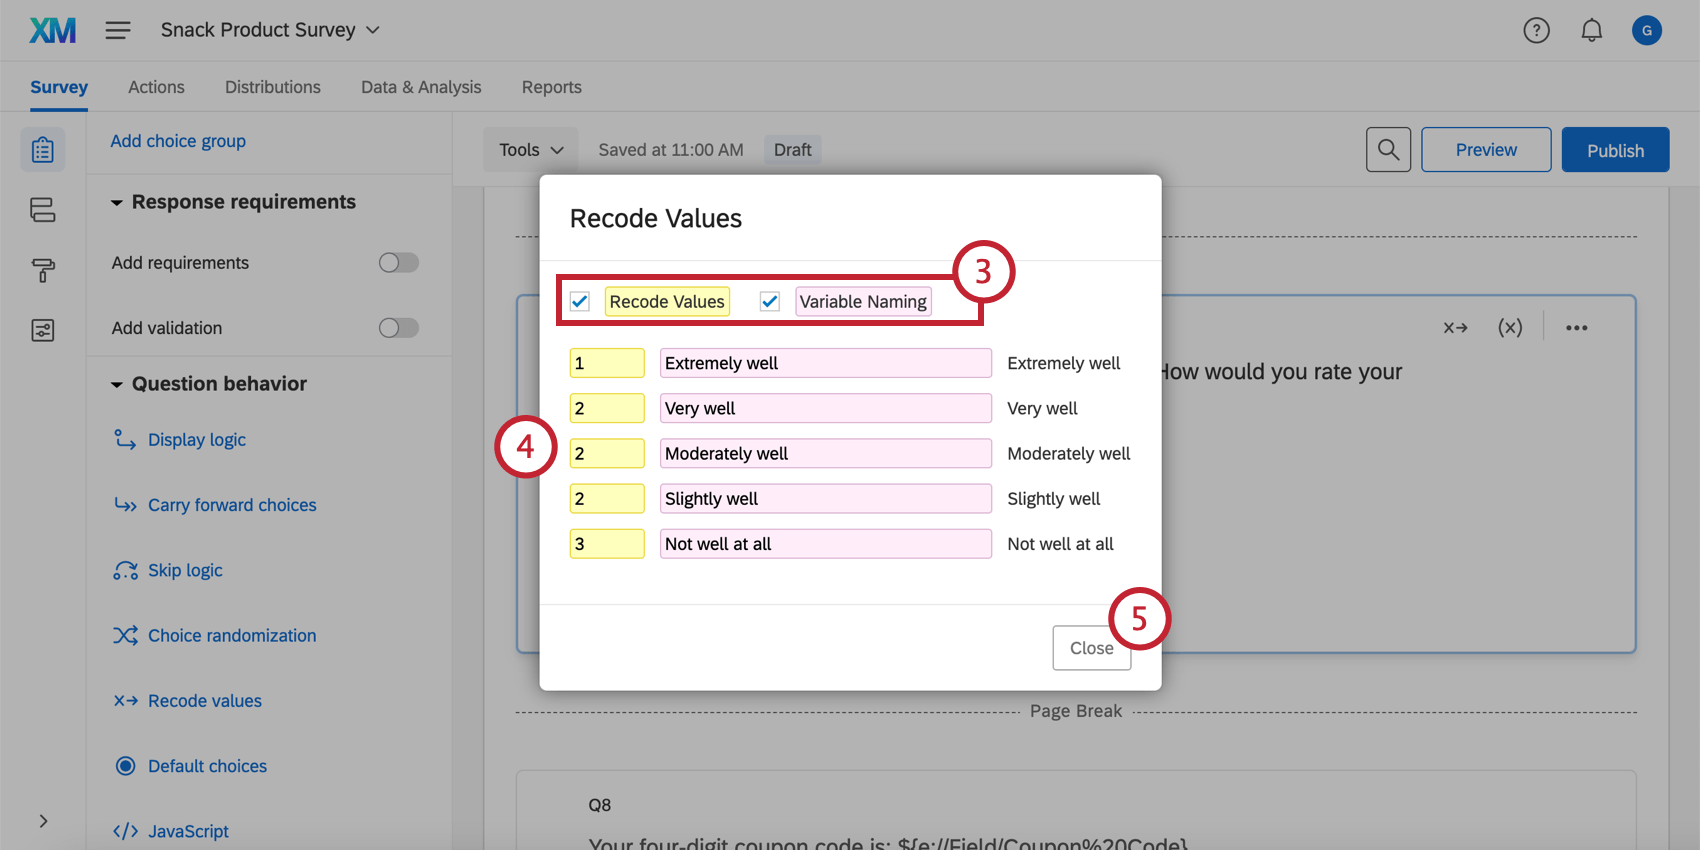 Recode Values and Variable Naming in the recode values window